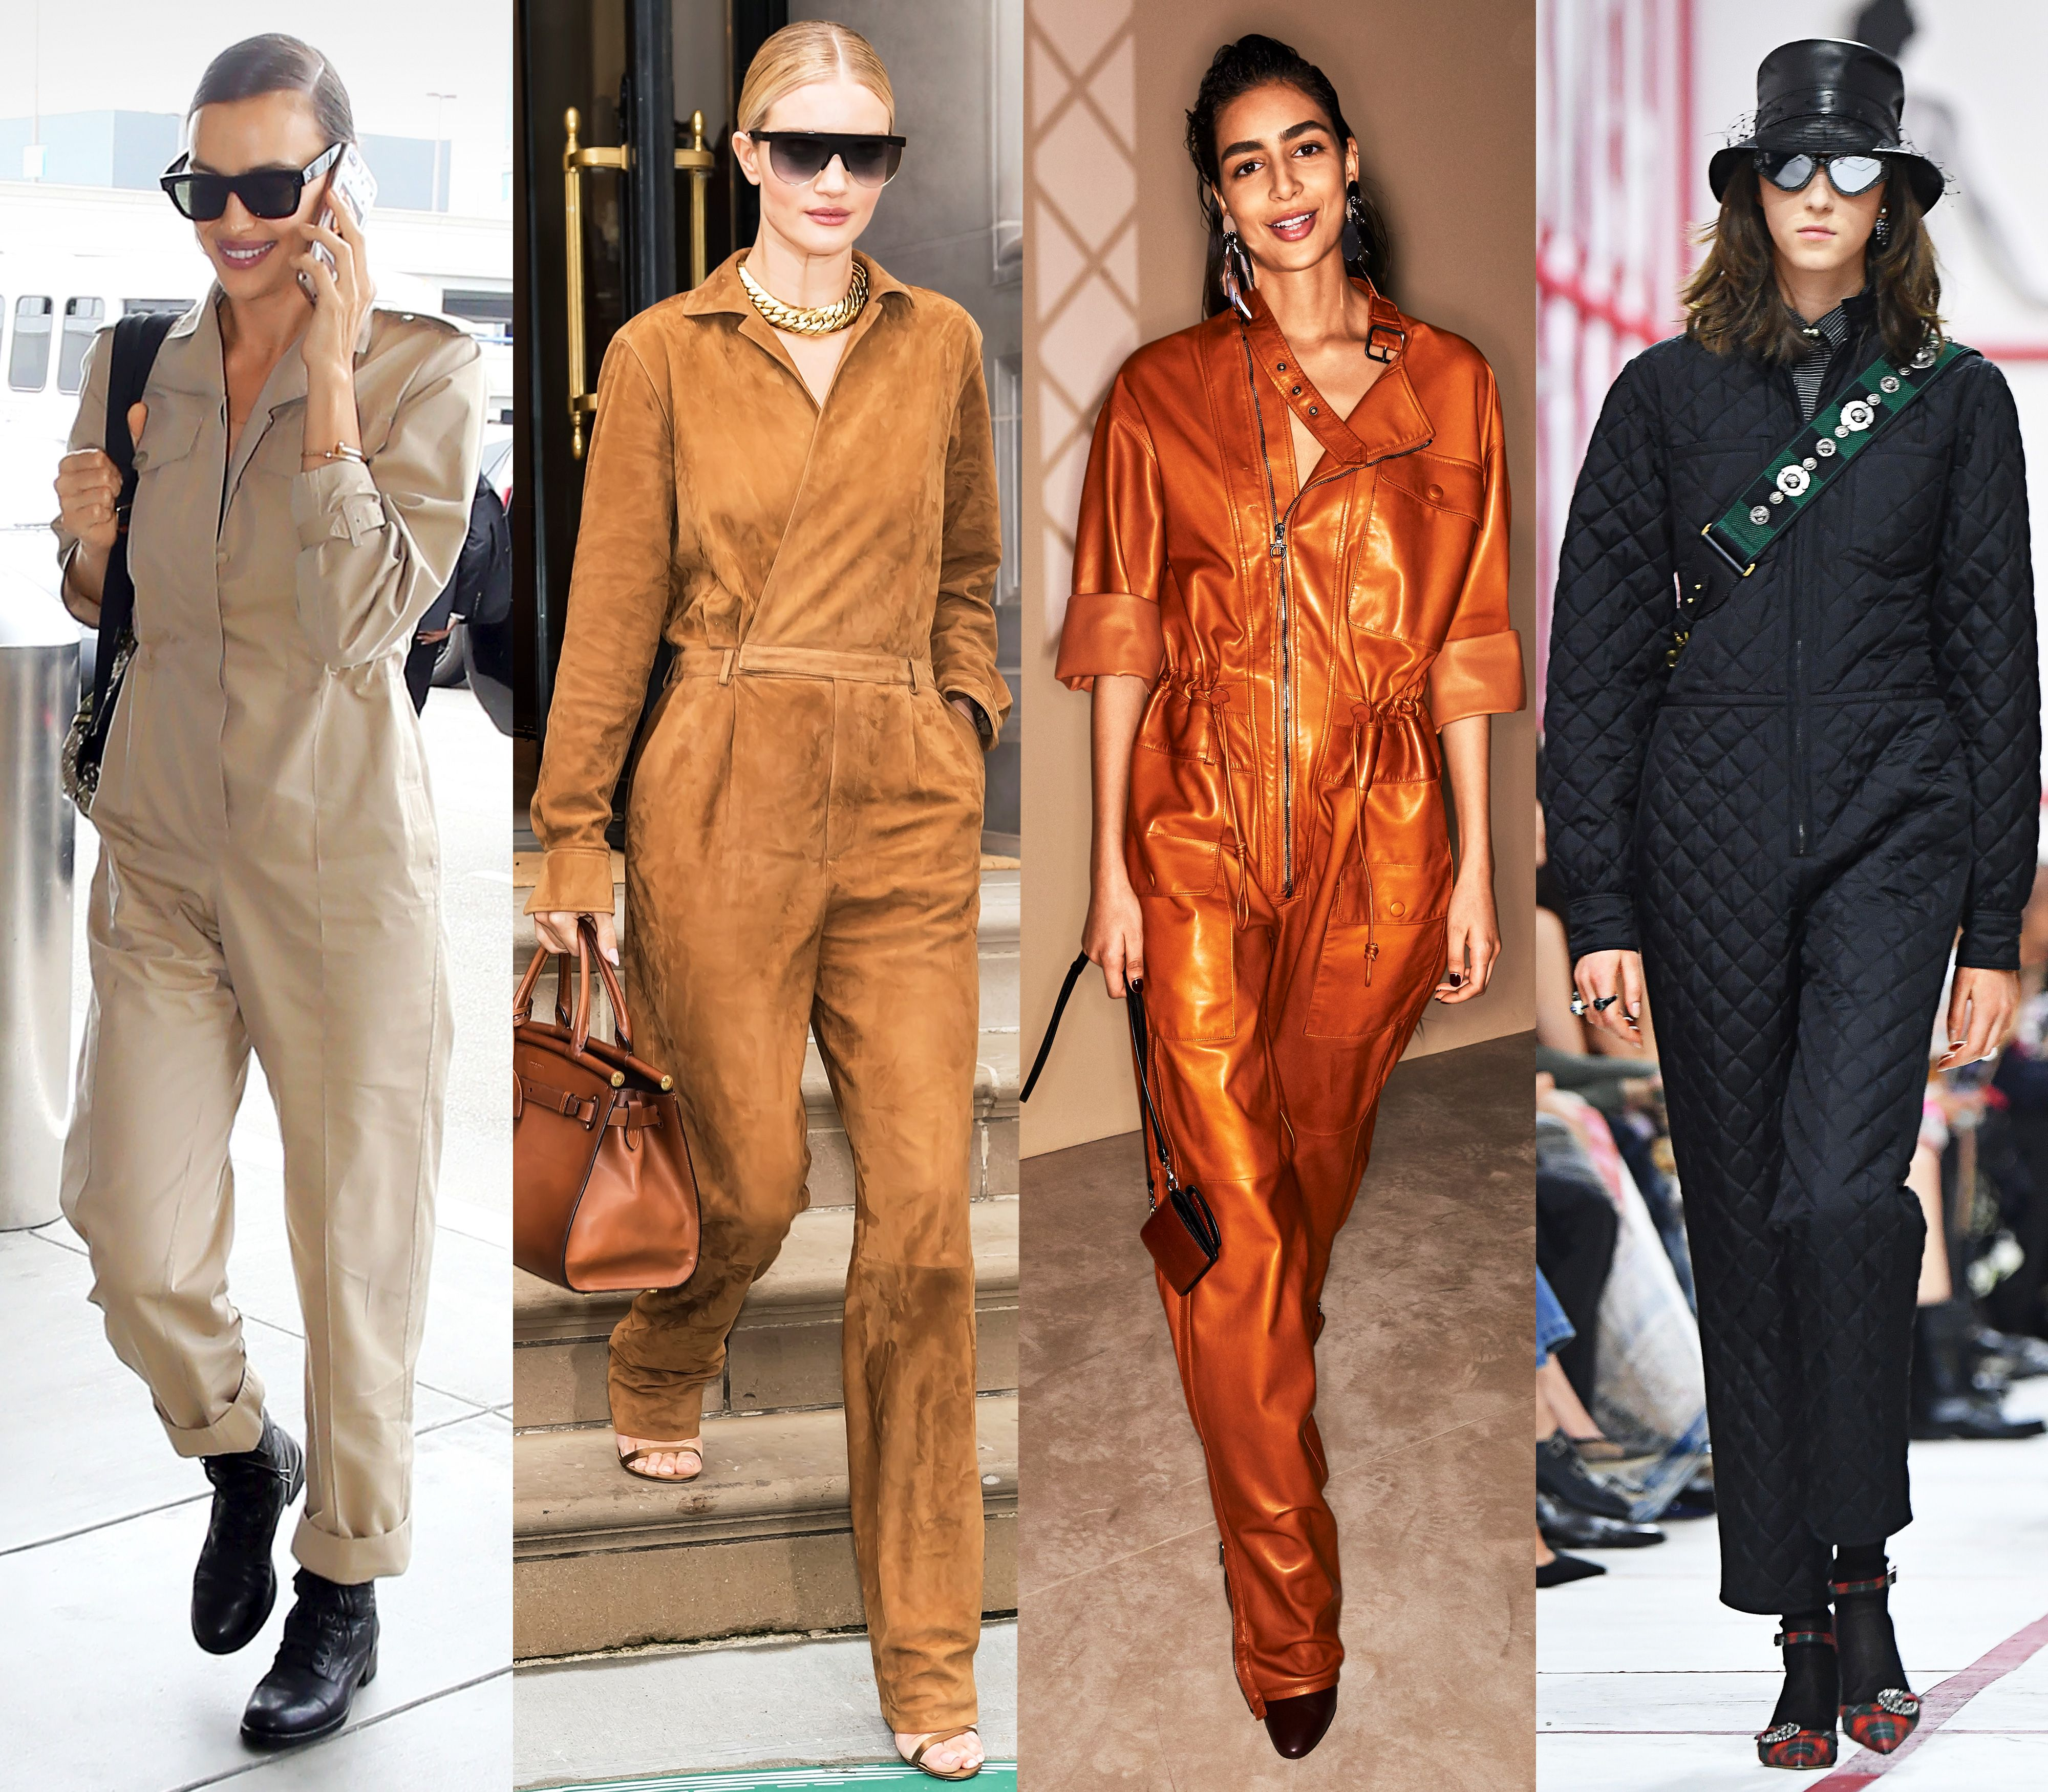 Is the Boilersuit the New Power Suit?